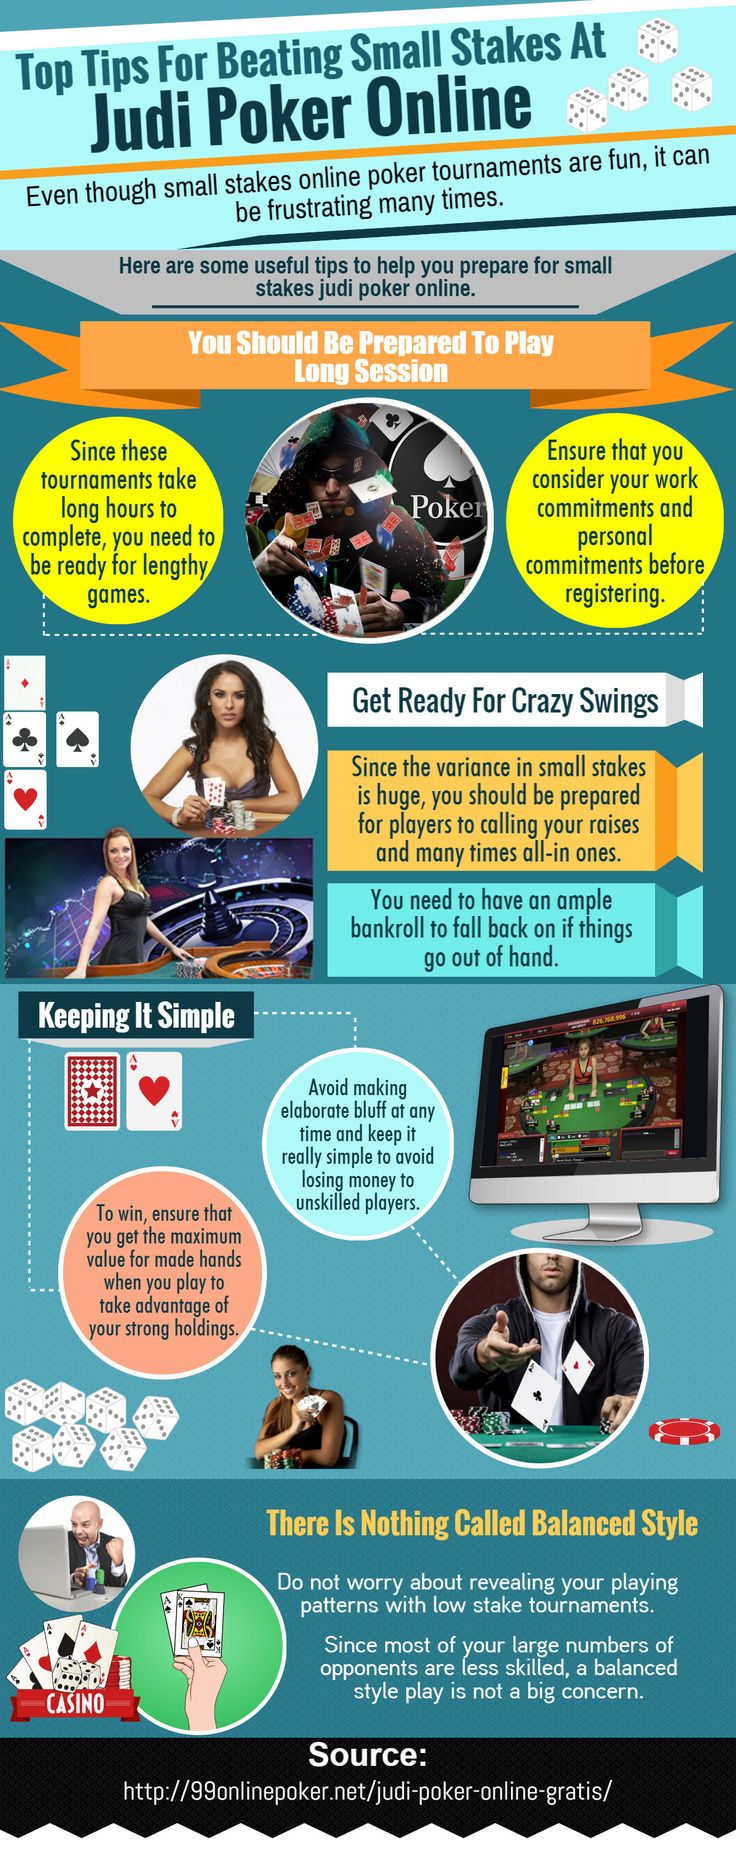 A land based casino can offer only a few games because of the limitation of space and other resources. However, Judi Poker Online allows you to bet on all the popular poker games at one place. For More Information about Judi Poker Online, please check http://99onlinepoker.net/judi-poker-online-gratis/